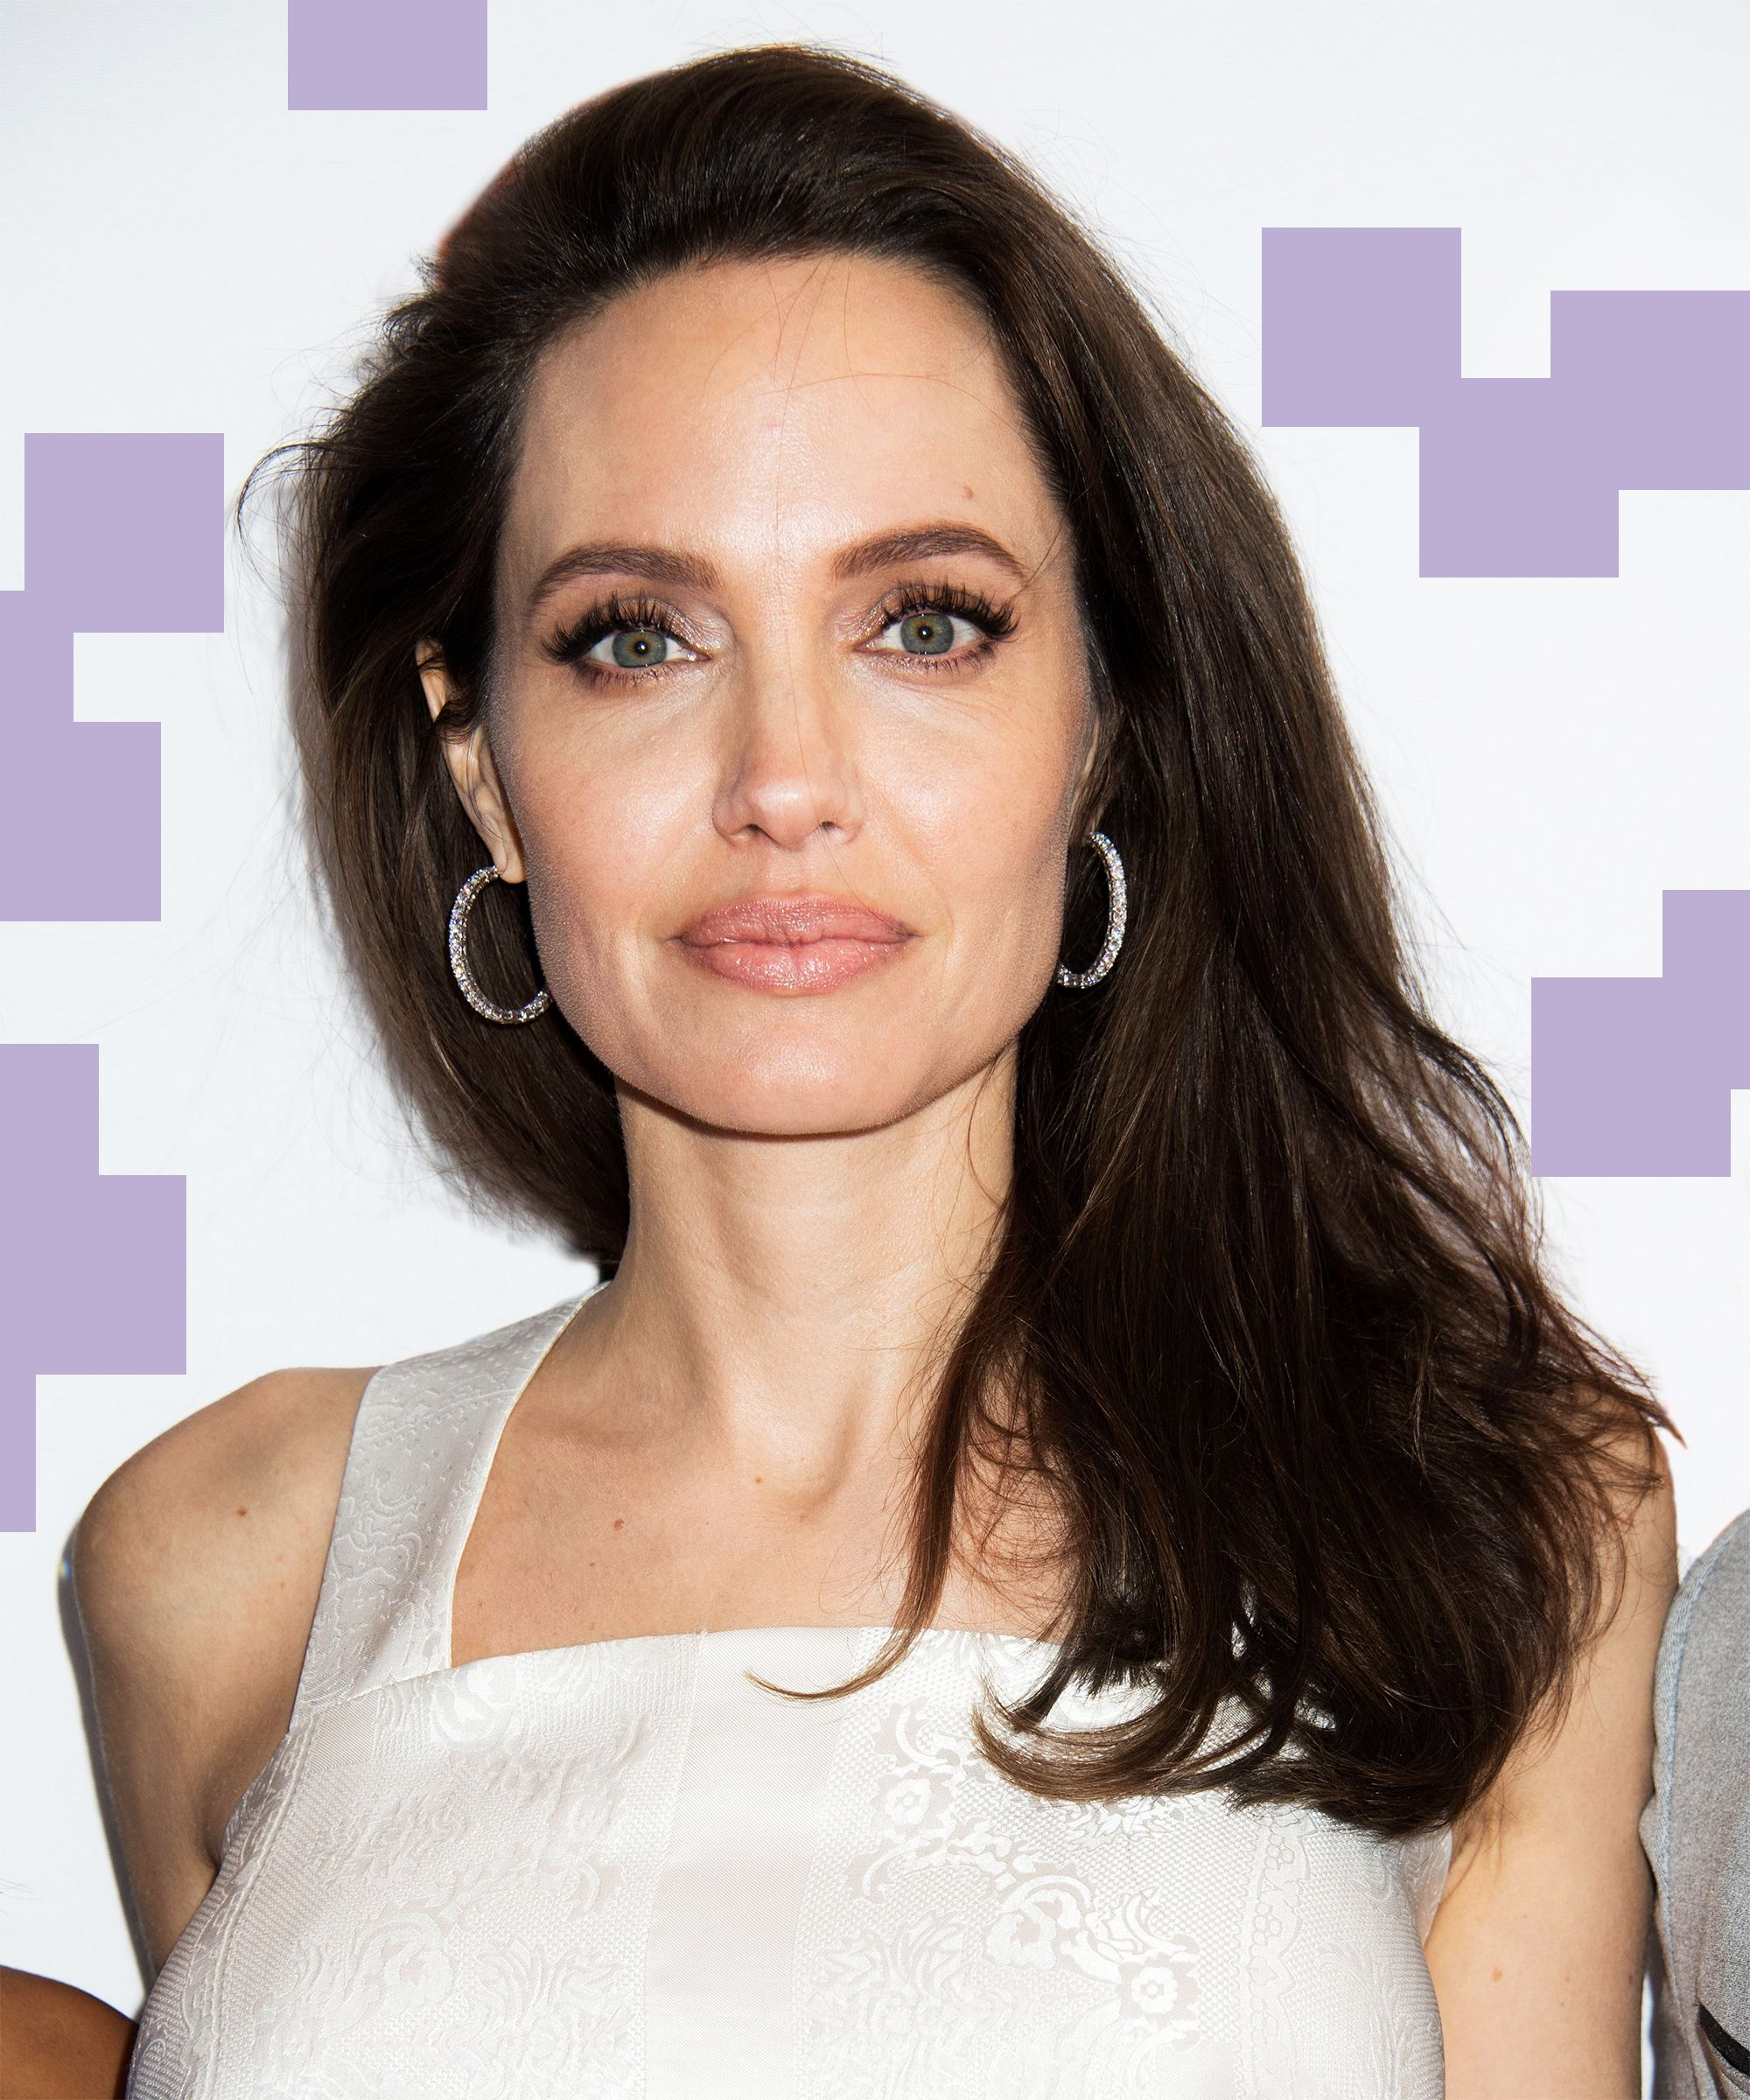 Angelina Jolie Haircut Blunt Trim Fall Trends For Angelina Jolie Short Hairstyles (View 5 of 25)